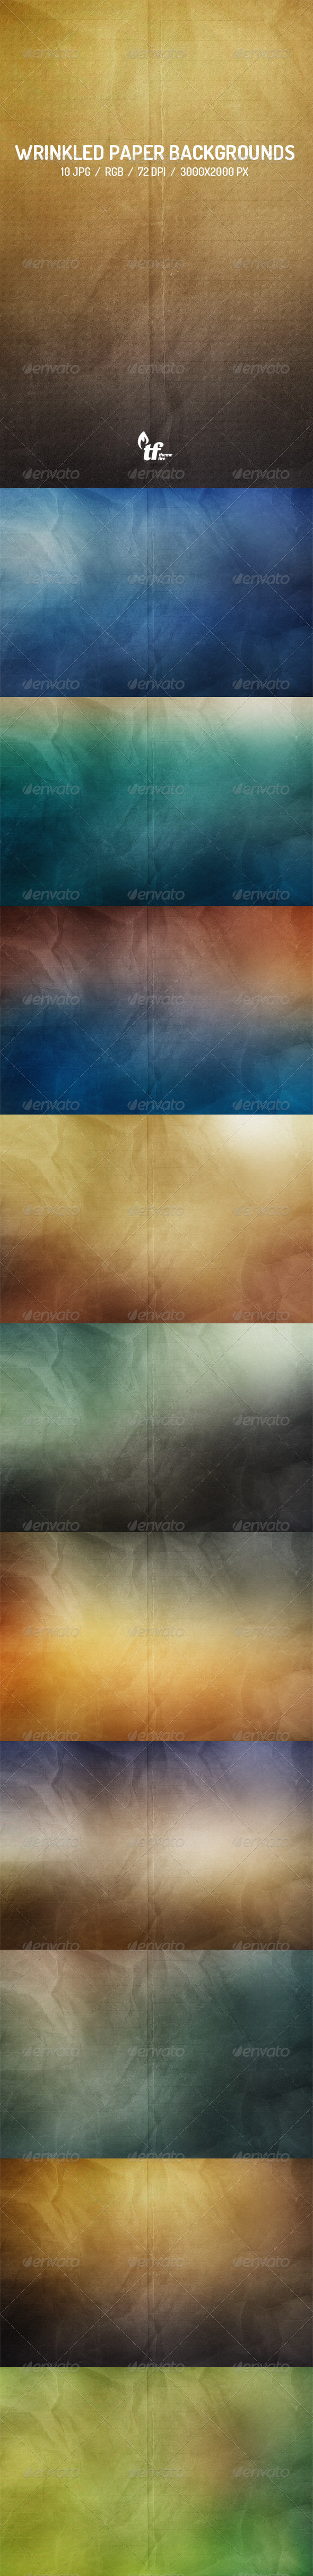 GraphicRiver Wrinkled Paper Backgrounds 7570616